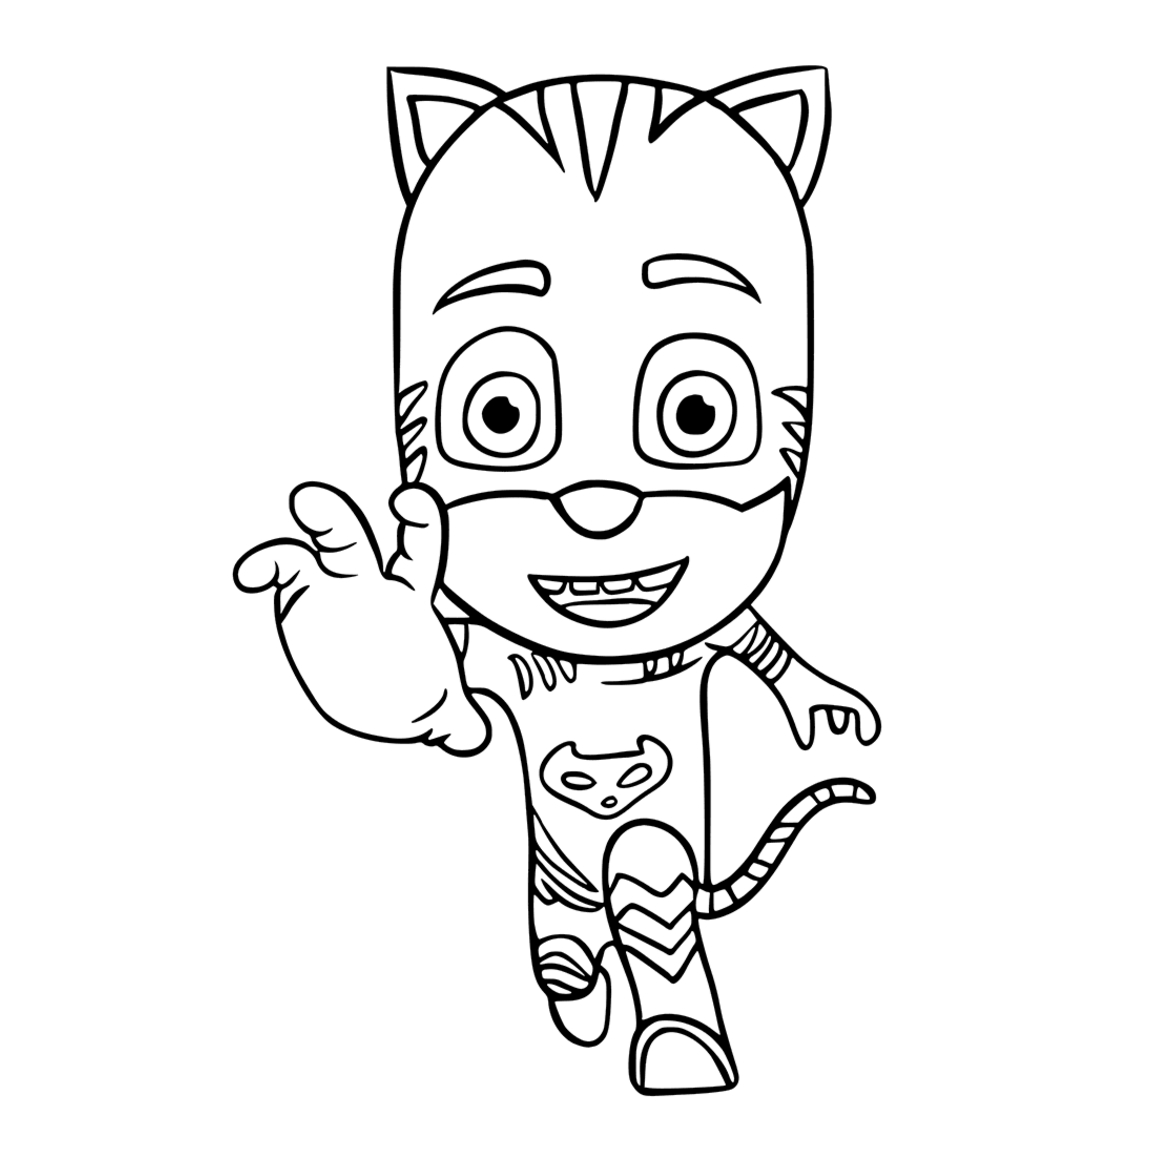 Catboy Coloring Pages - Pj Masks Coloring Pages to and Print for Free